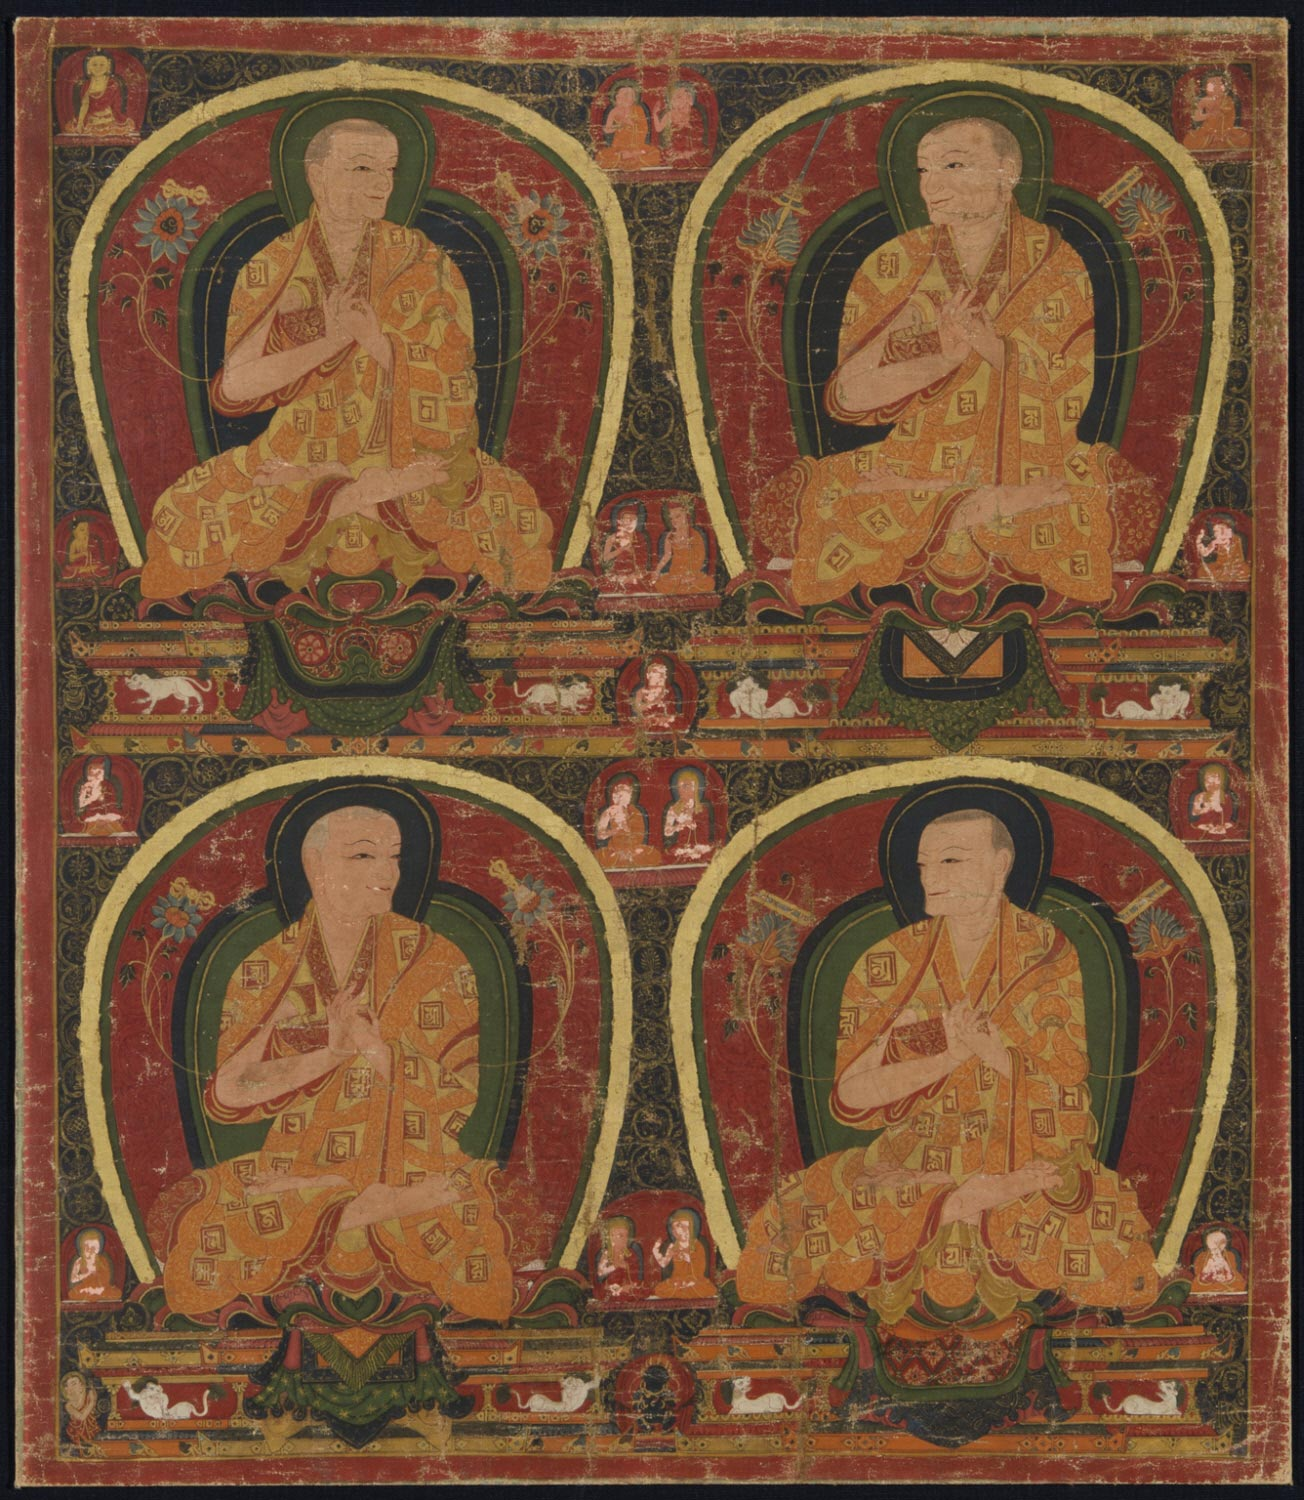 Four Sakya Lamas in Light Robes with Lam-dre Lineage